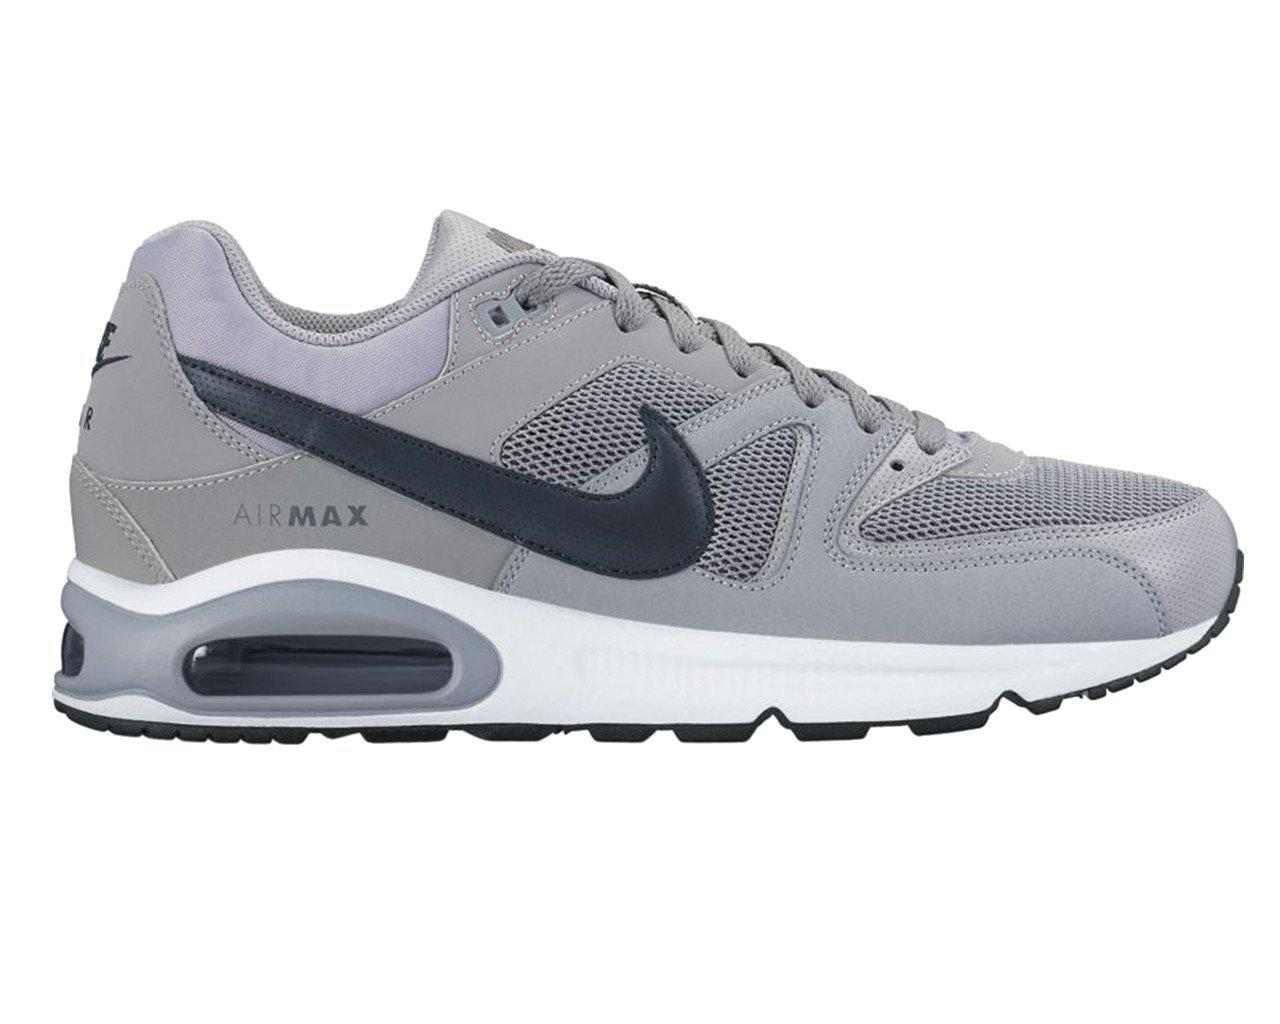 online store afa5a b70ef Nike Air Max Command Grey Trainers in Gray for Men - Lyst